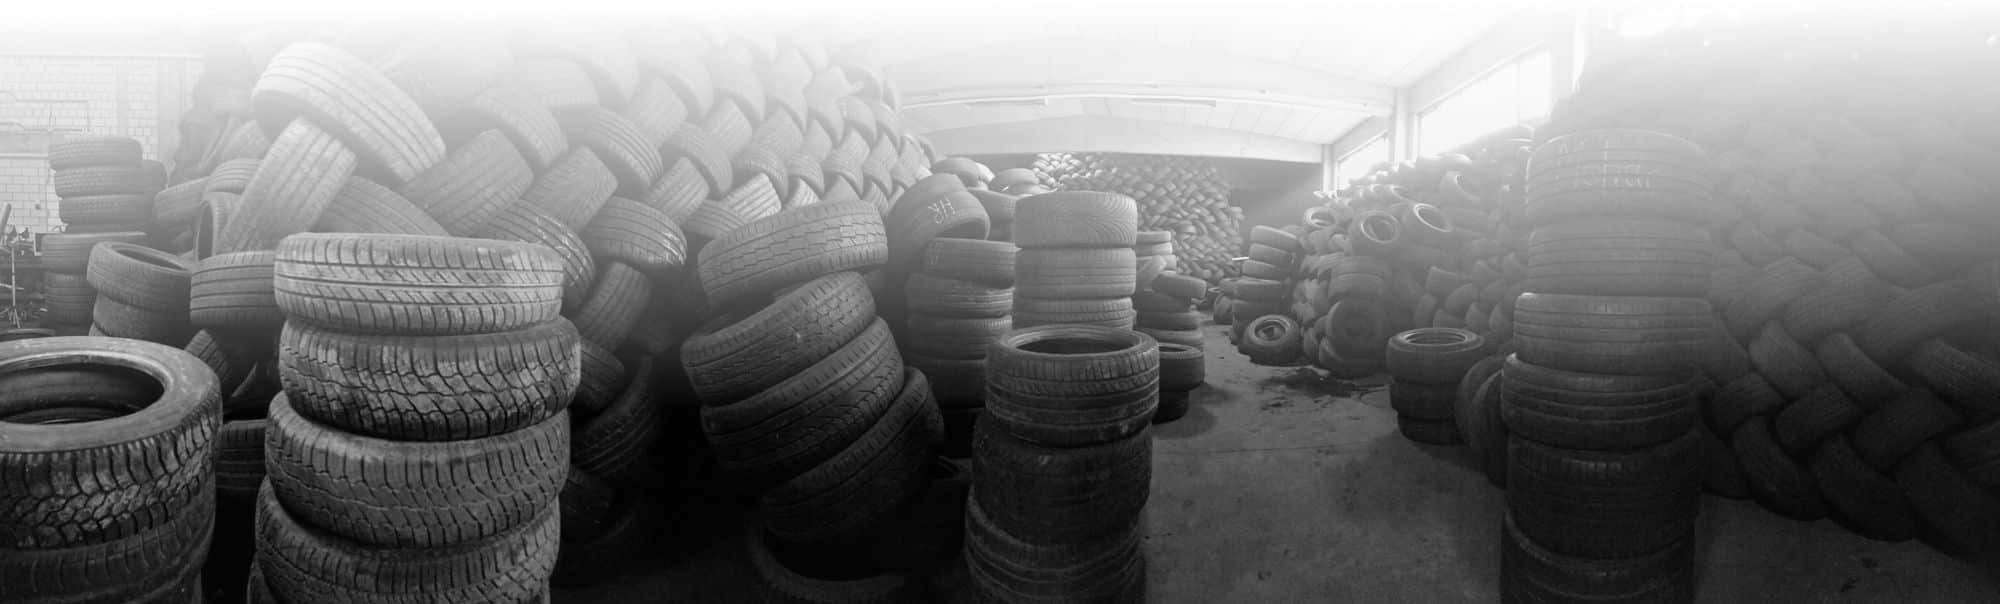 Warehouse for used tyres in Germany